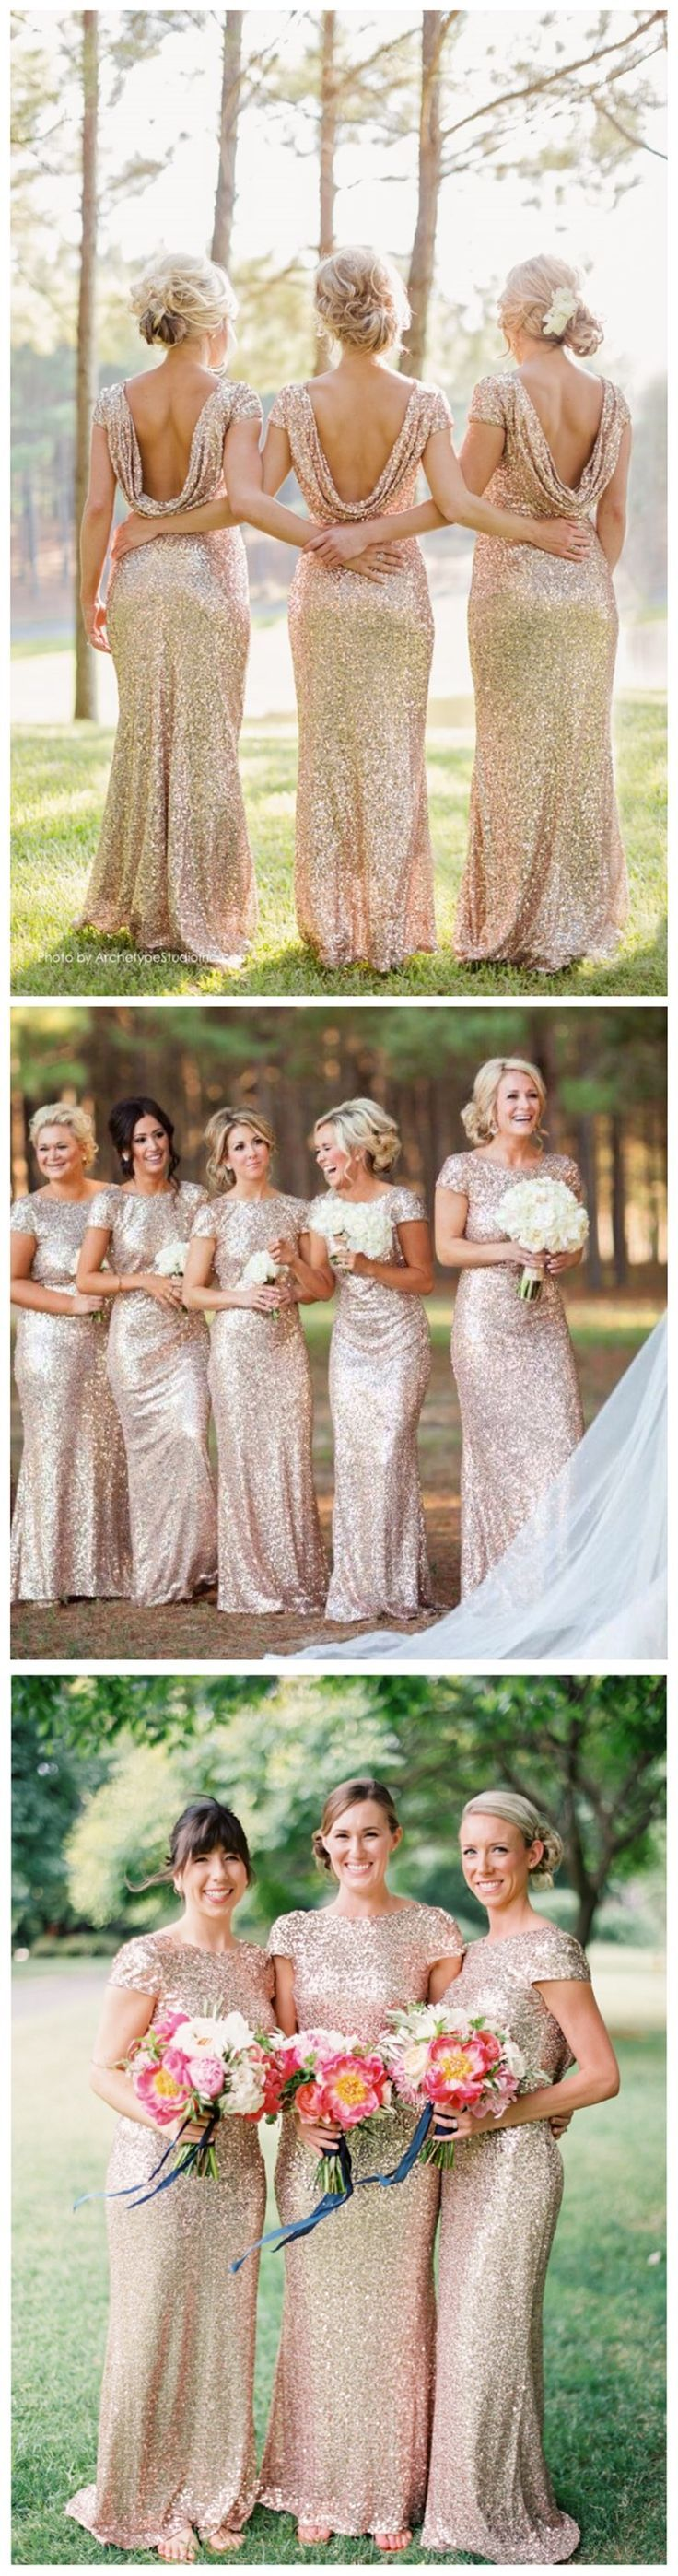 Best 25 unique bridesmaid dresses ideas on pinterest summer best 25 unique bridesmaid dresses ideas on pinterest summer bridesmaid dresses wrap bridesmaid dresses and blue bridesmaid dresses ombrellifo Image collections